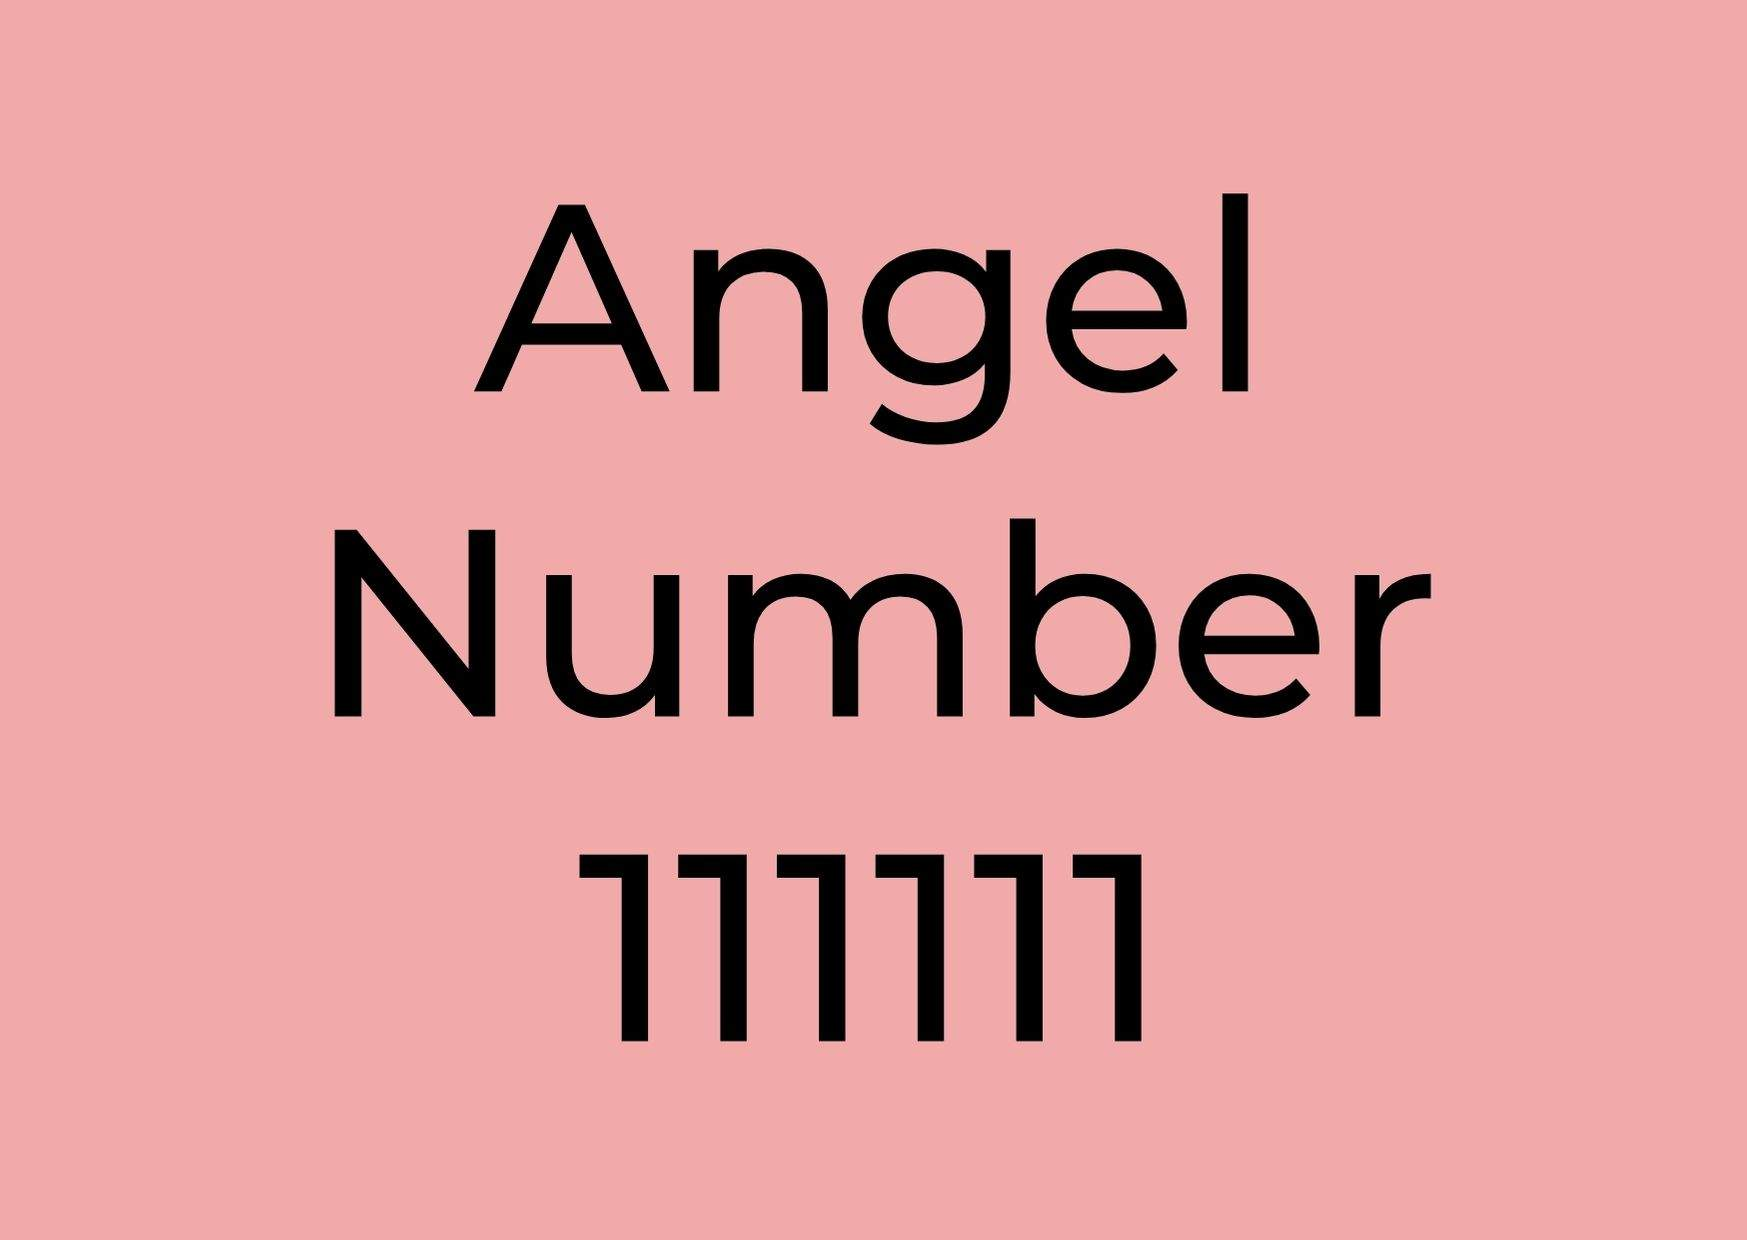 Meaning of angel number 111111